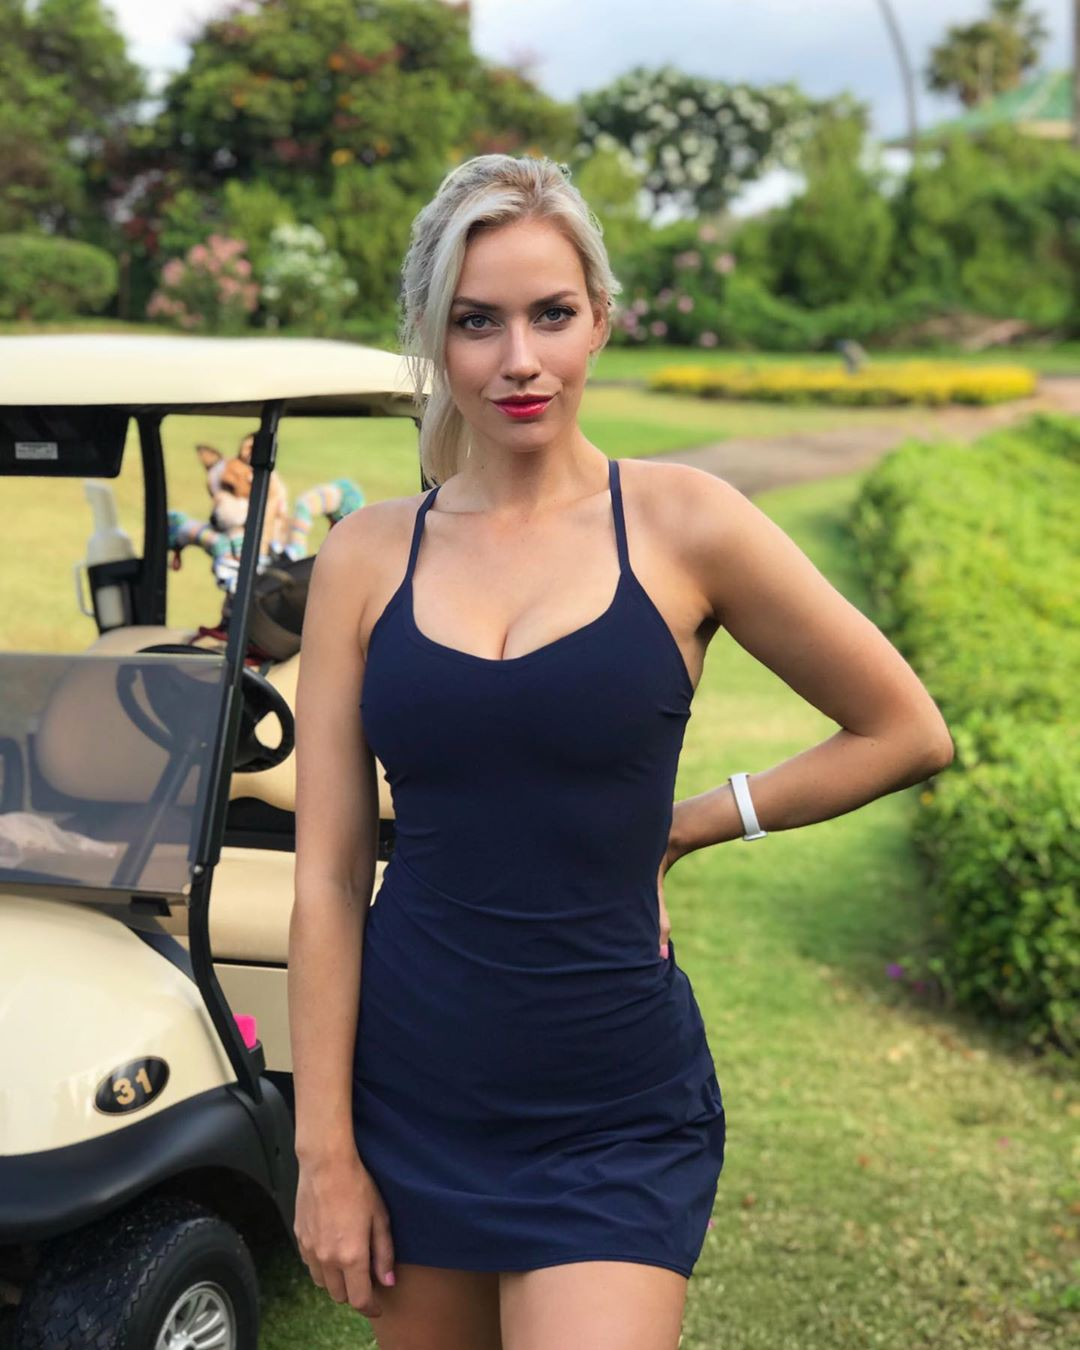 Find out more on paige spiranac instagram